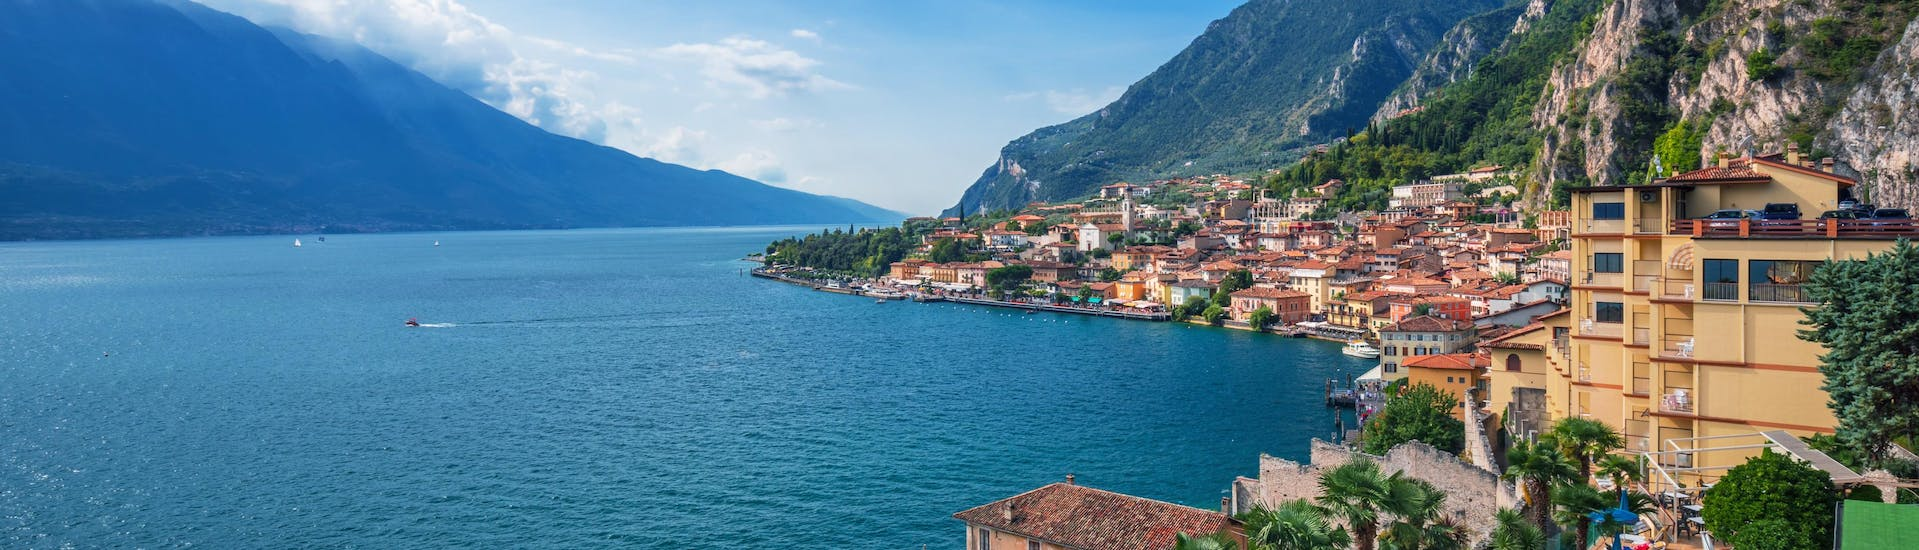 An image of the beautiful Lake Garda in Northern Italy, the perfect spot to book a boat trip in summer.